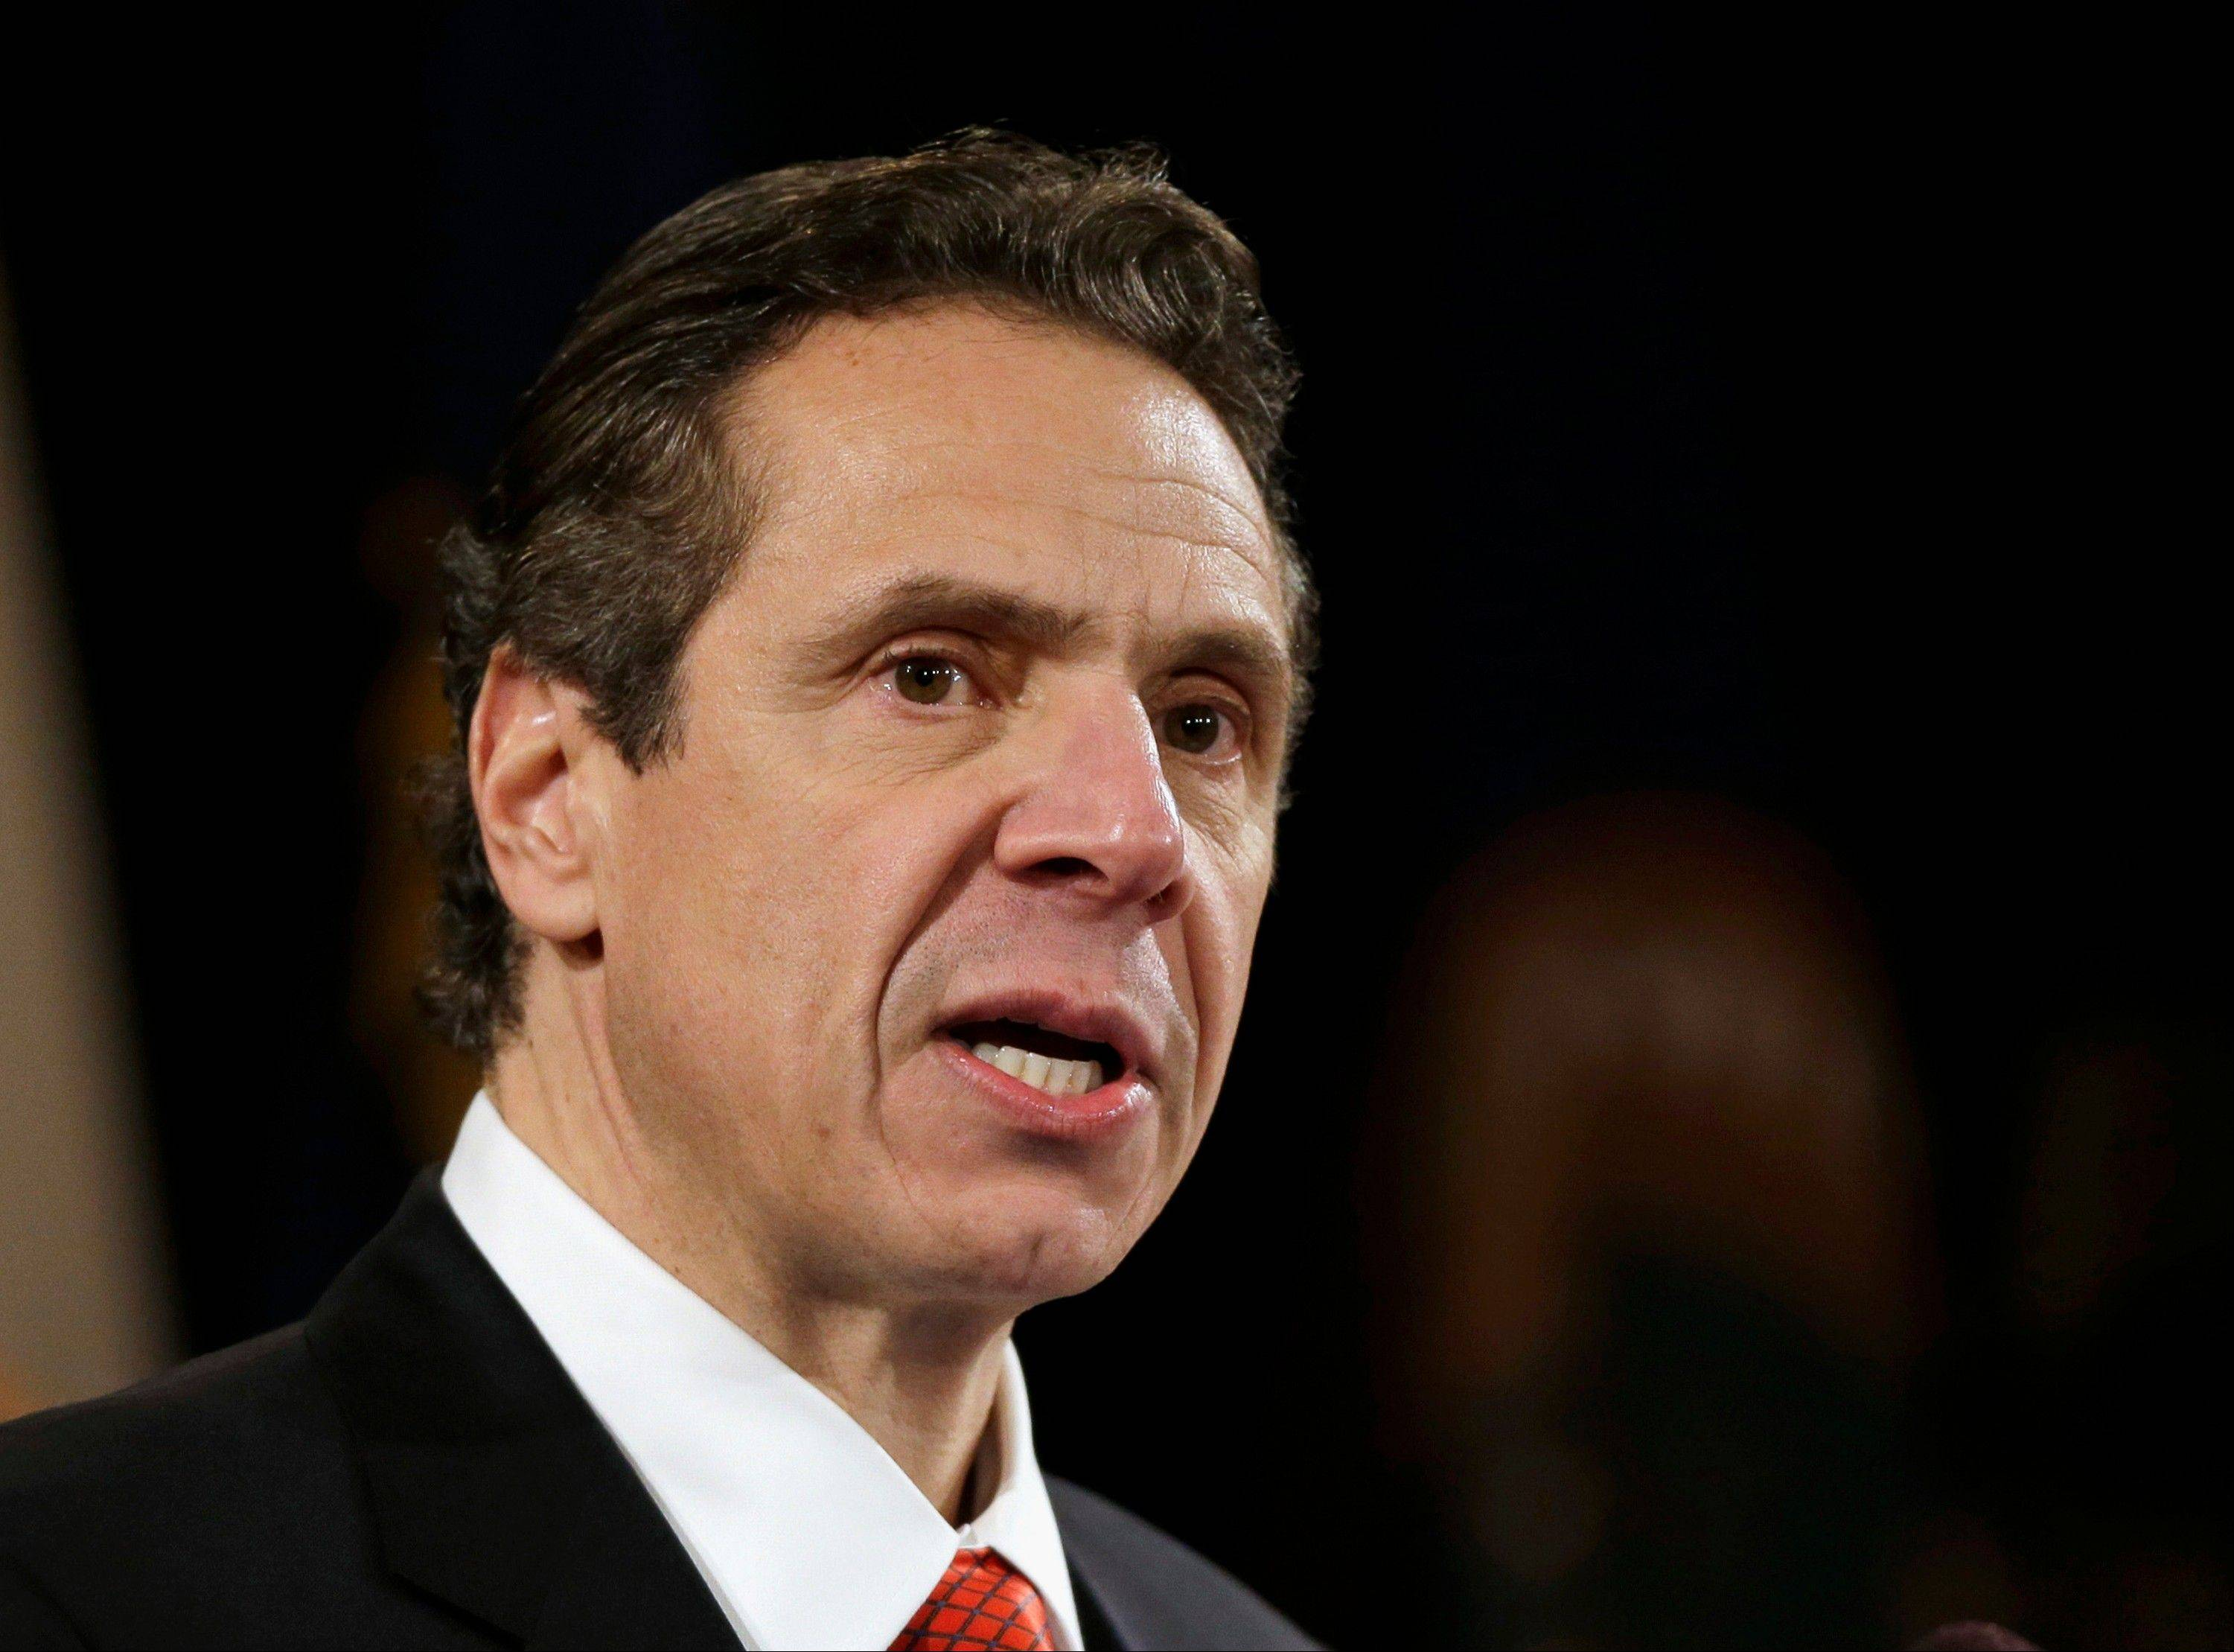 A look at potential presidential candidate Andrew Cuomo